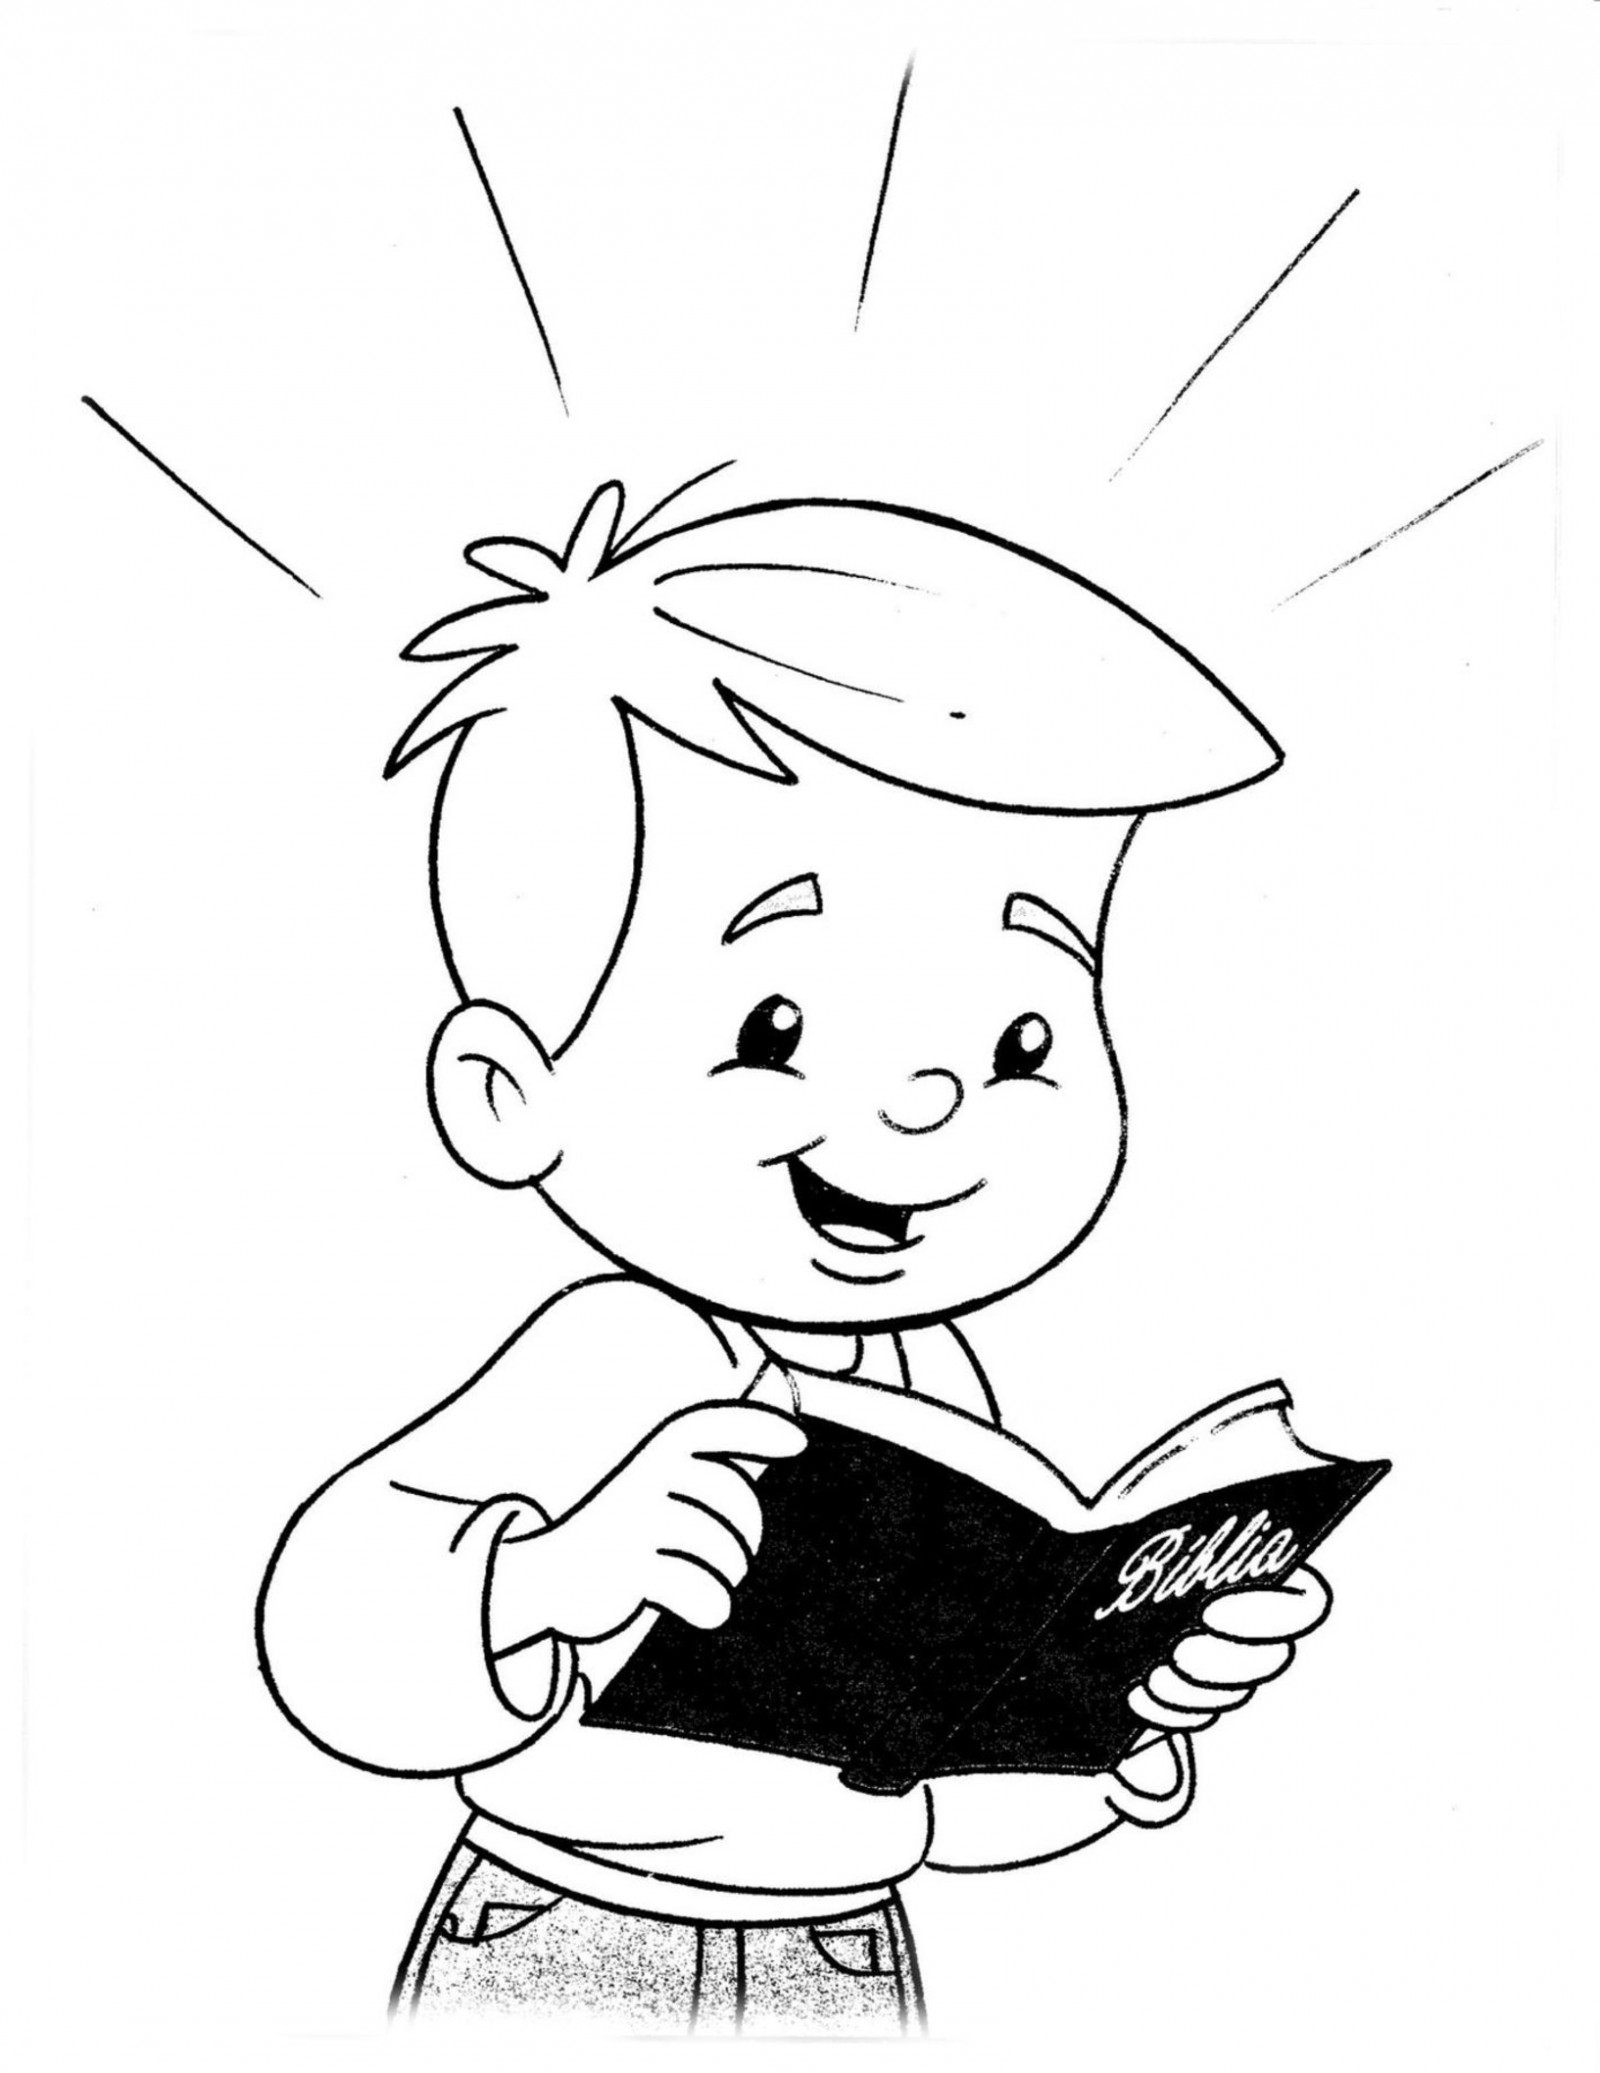 Preschool Coloring Pages 15 Coloring Kids